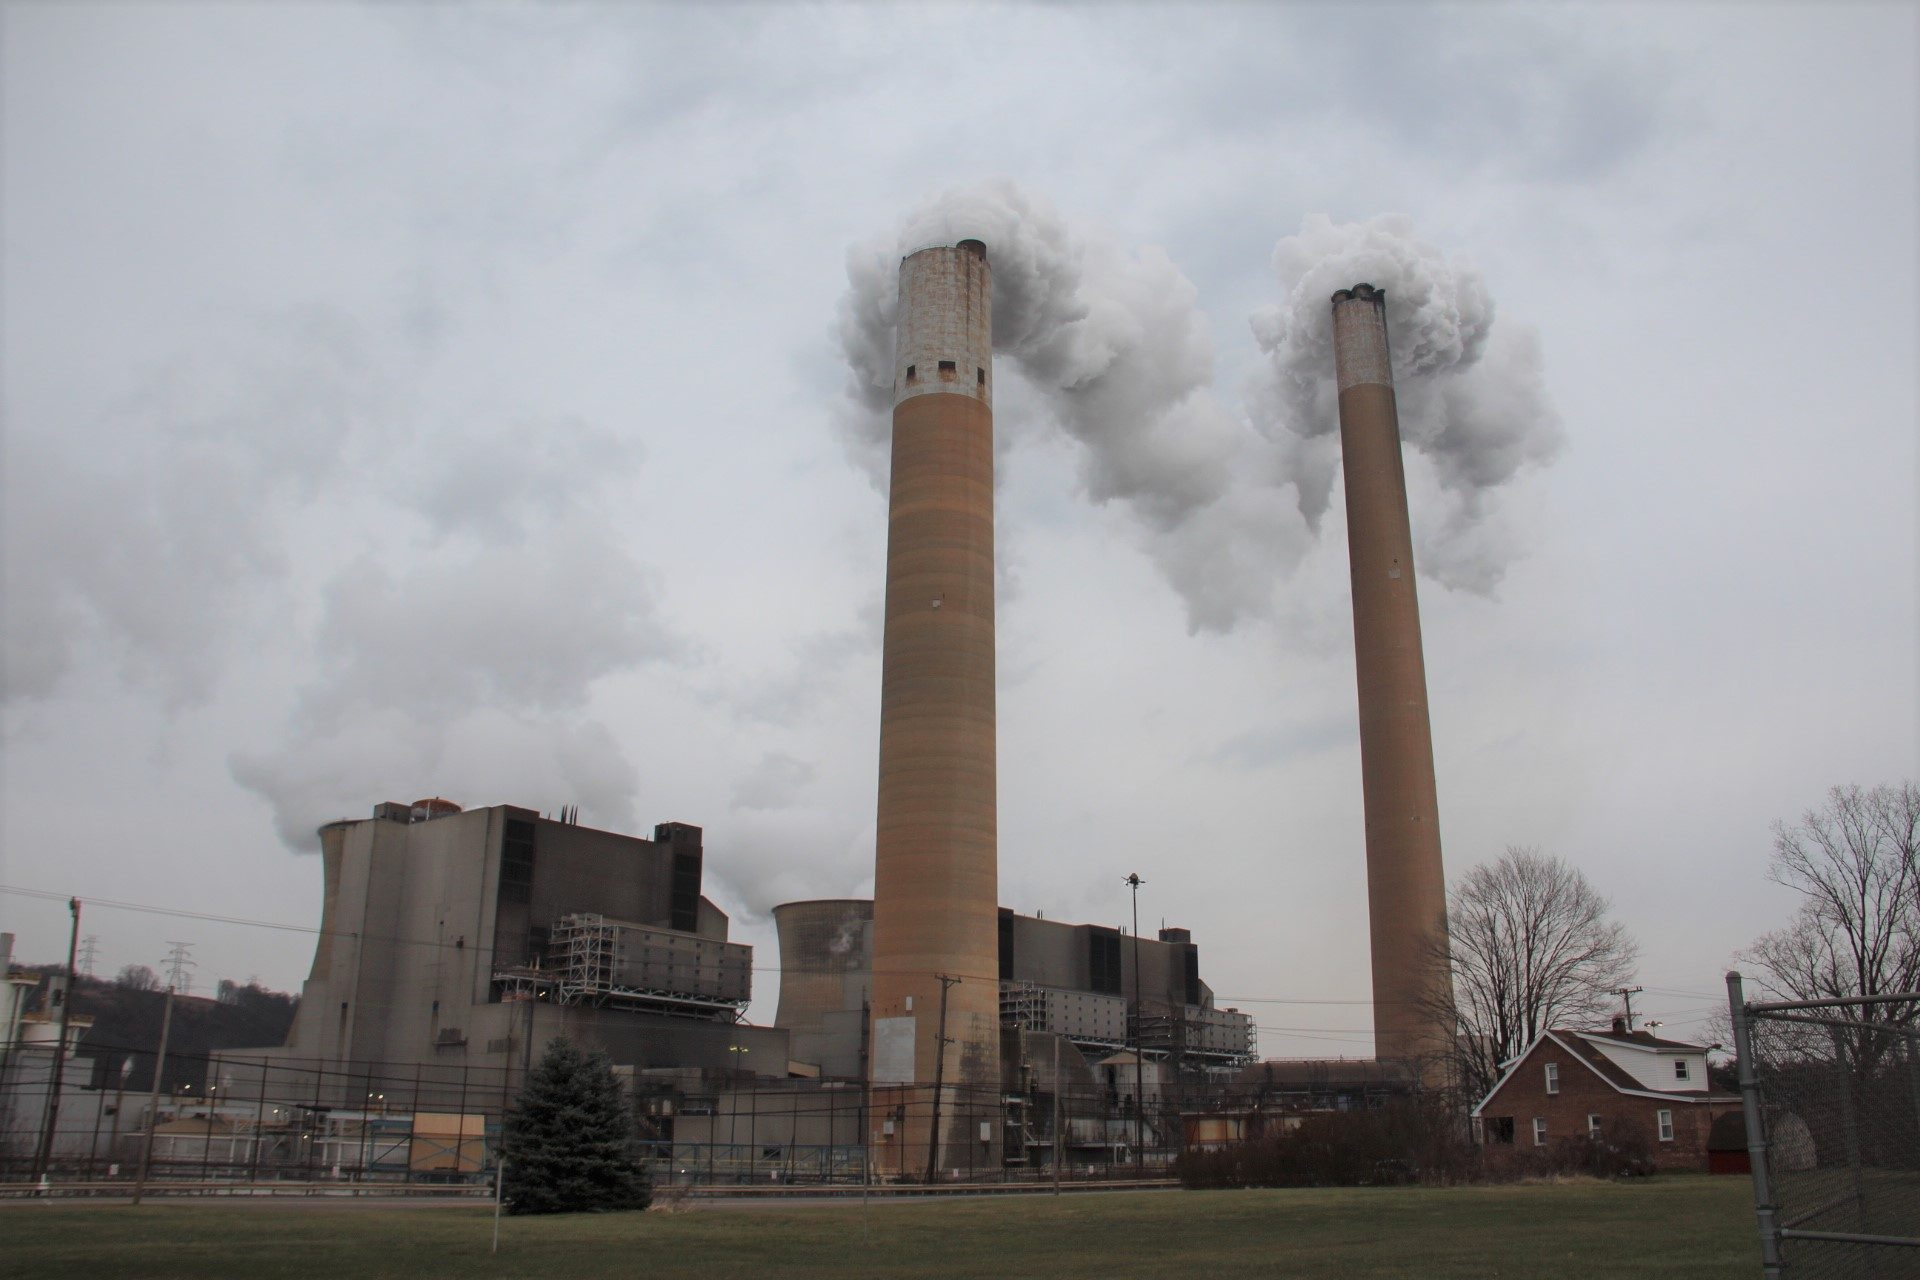 Research shows thousands could be saved with better air quality standards | StateImpact Pennsylvania